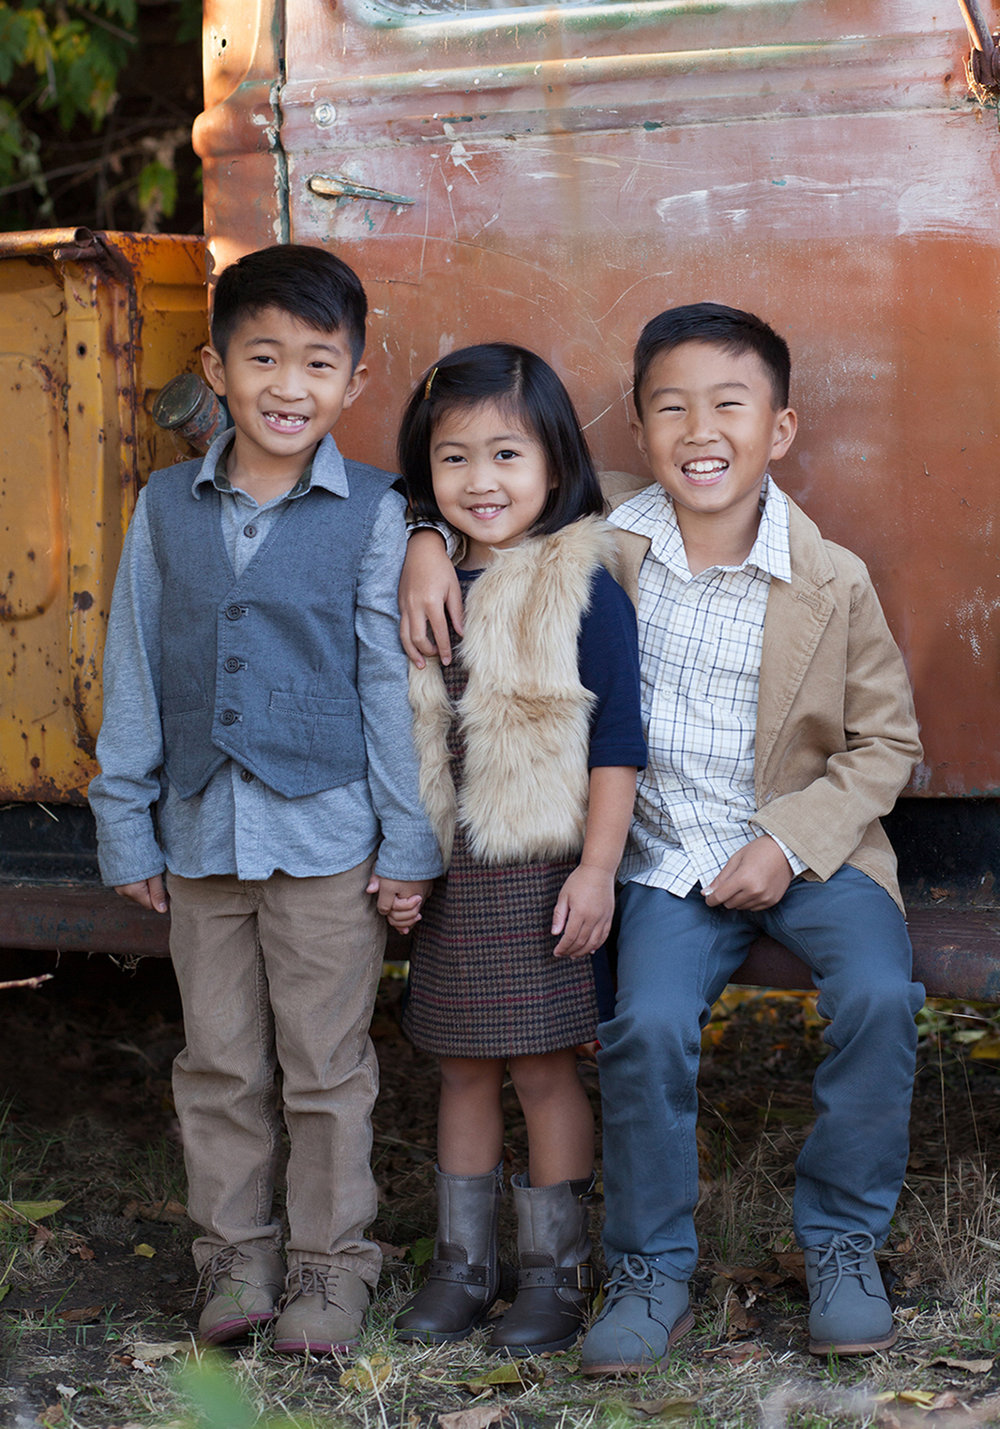 siblings portrait by vintage truck bay area, ca